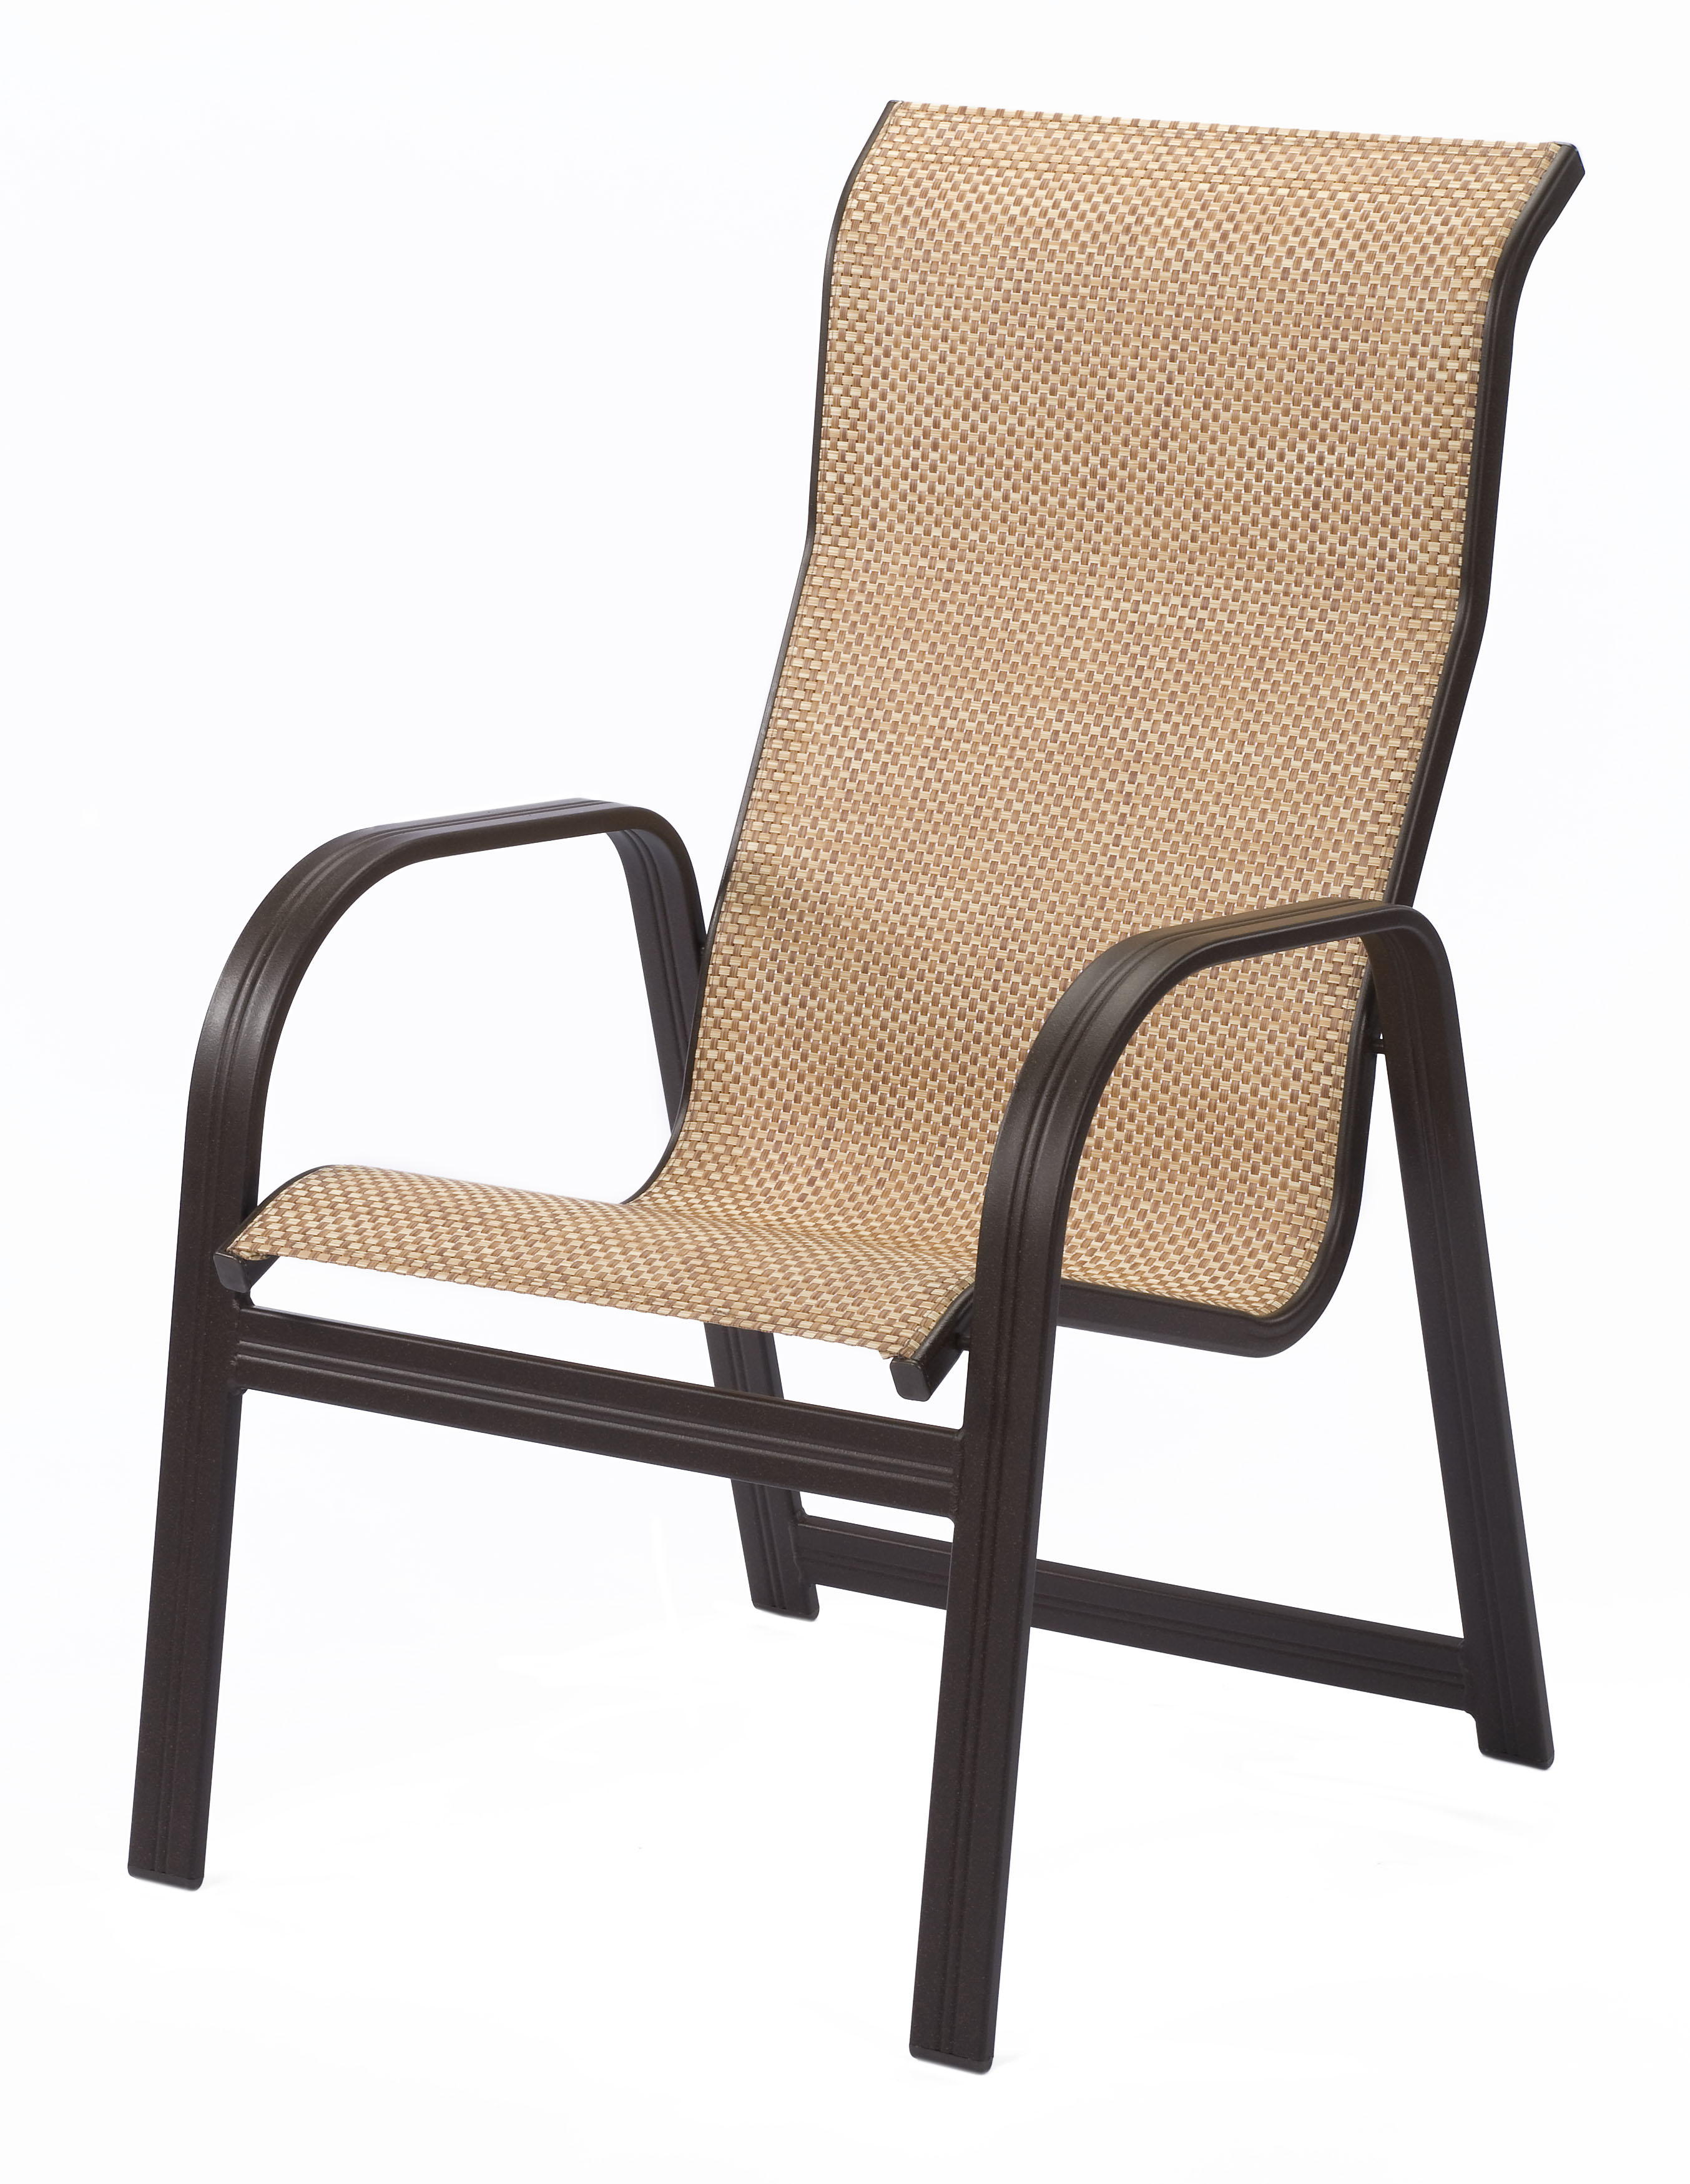 whbbt cabo sling high back aluminum dining arm chair